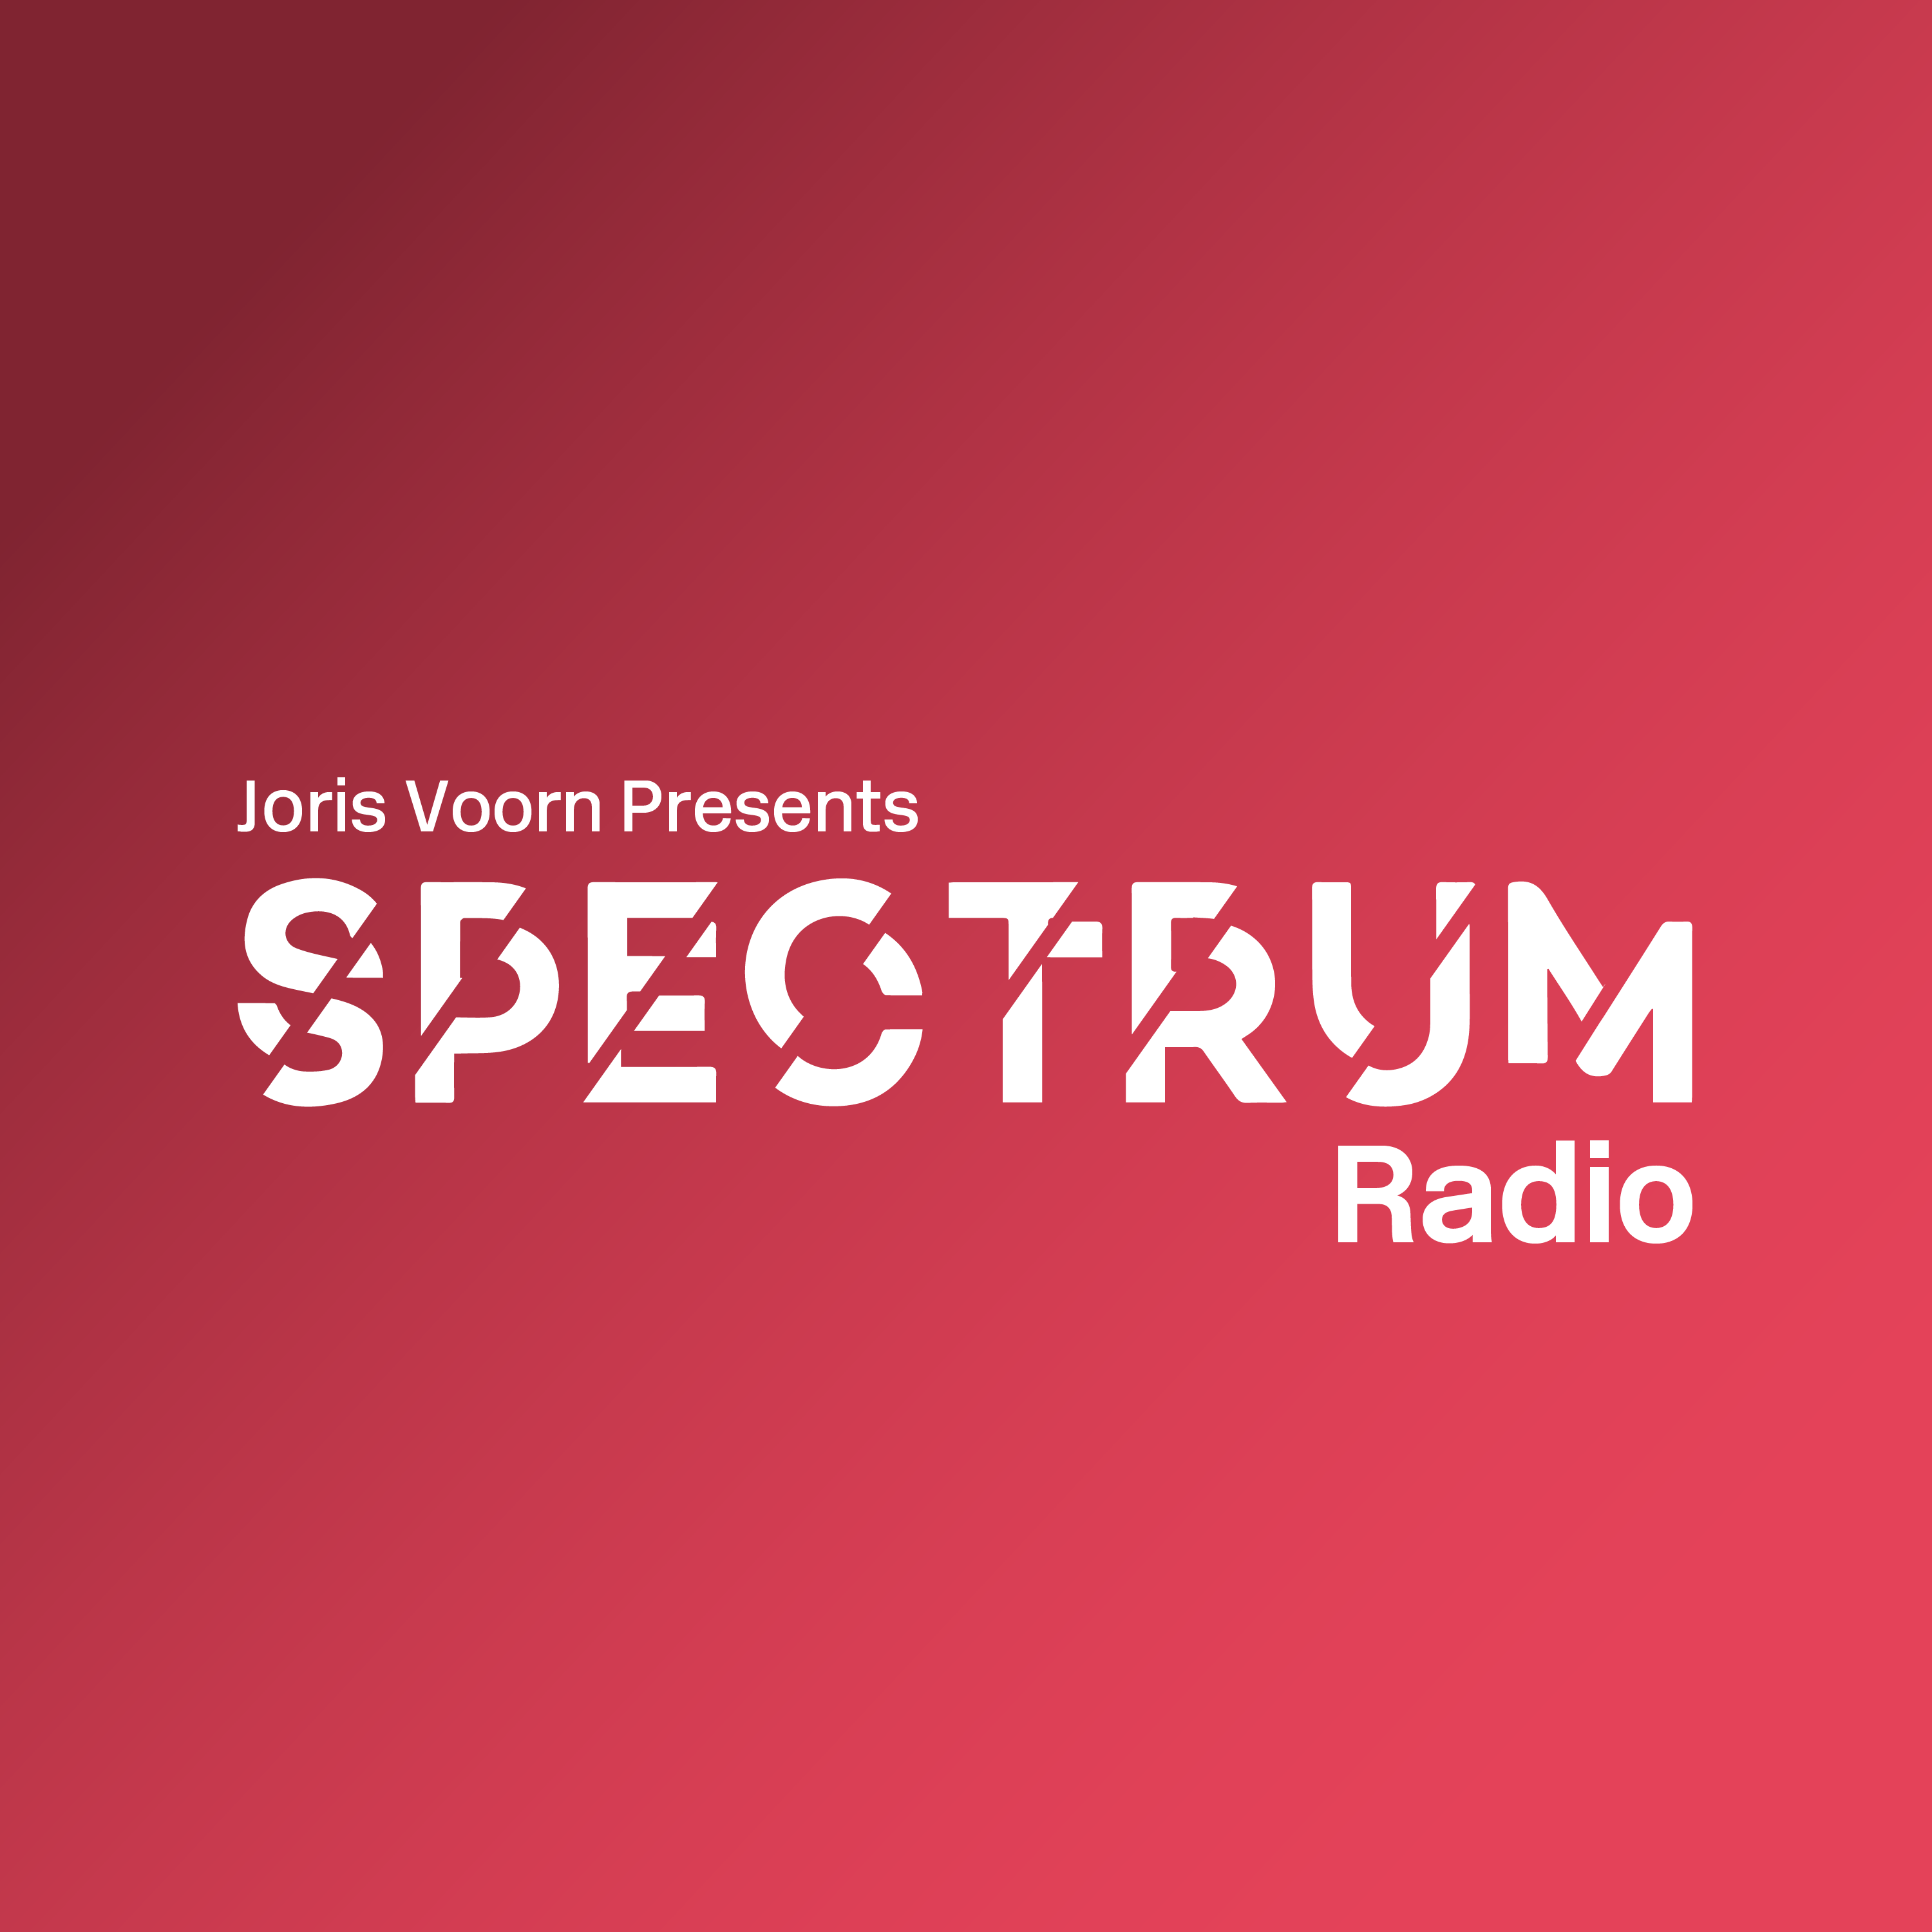 Delta Podcasts - Spectrum Radio By Joris Voorn (30.09.2017)